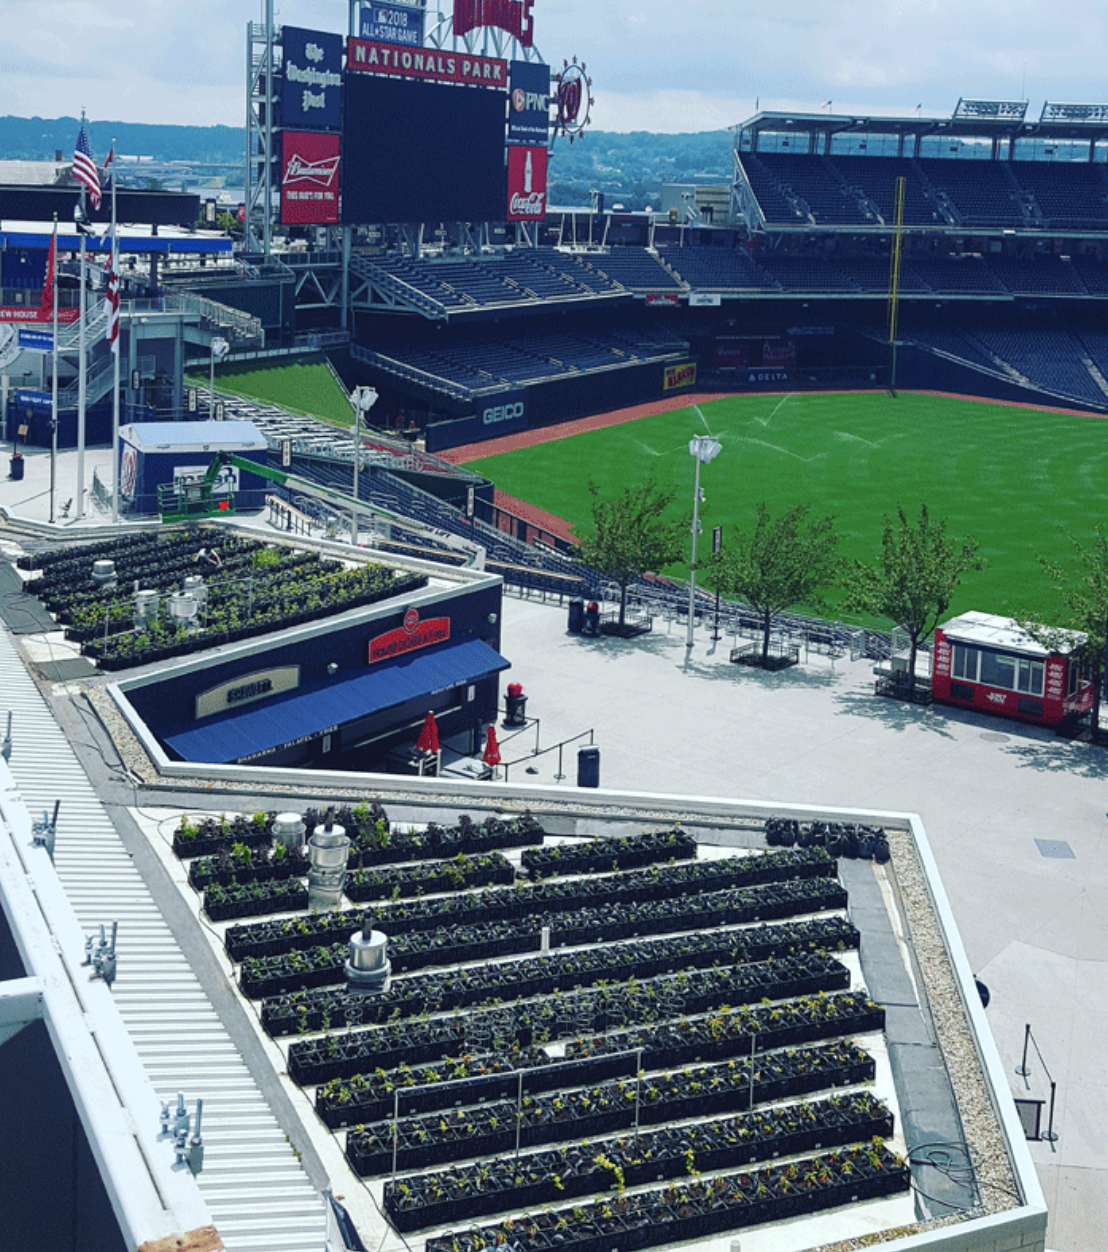 Image of the National's Park Rooftop Garden in 2016. Stay tuned for news about our plans for the 2018 season!